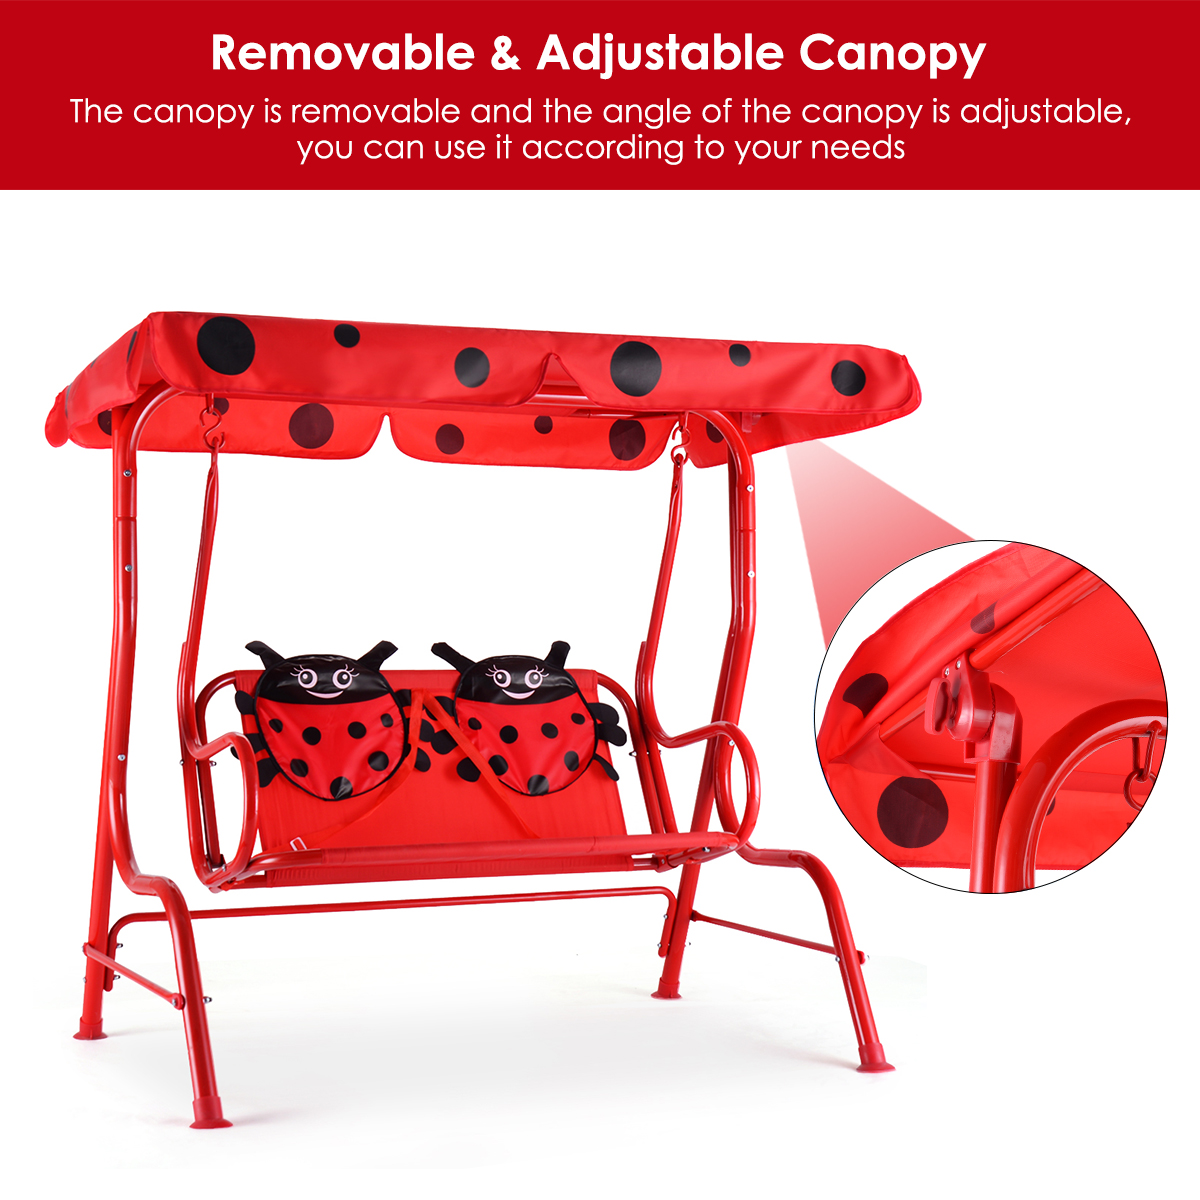 Kids Patio Swing Chair Children Porch Bench Canopy 2 Person Yard Furniture red - image 9 of 10